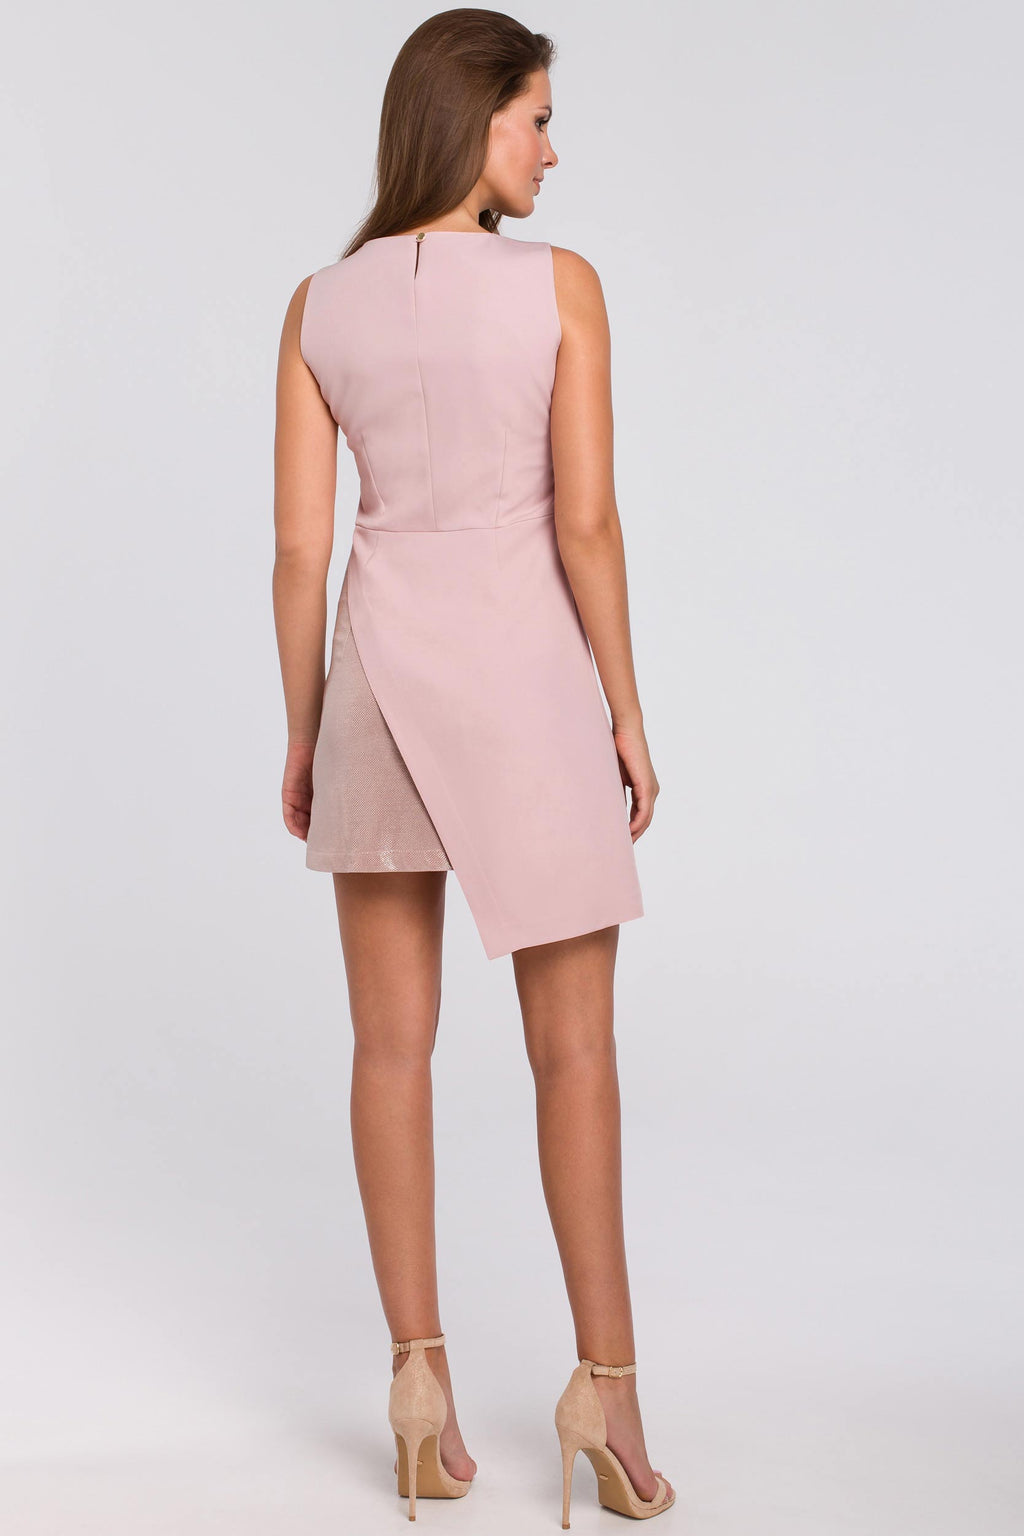 Mini Powder Pink Asymmetric Metallic Insert Dress - So Chic Boutique